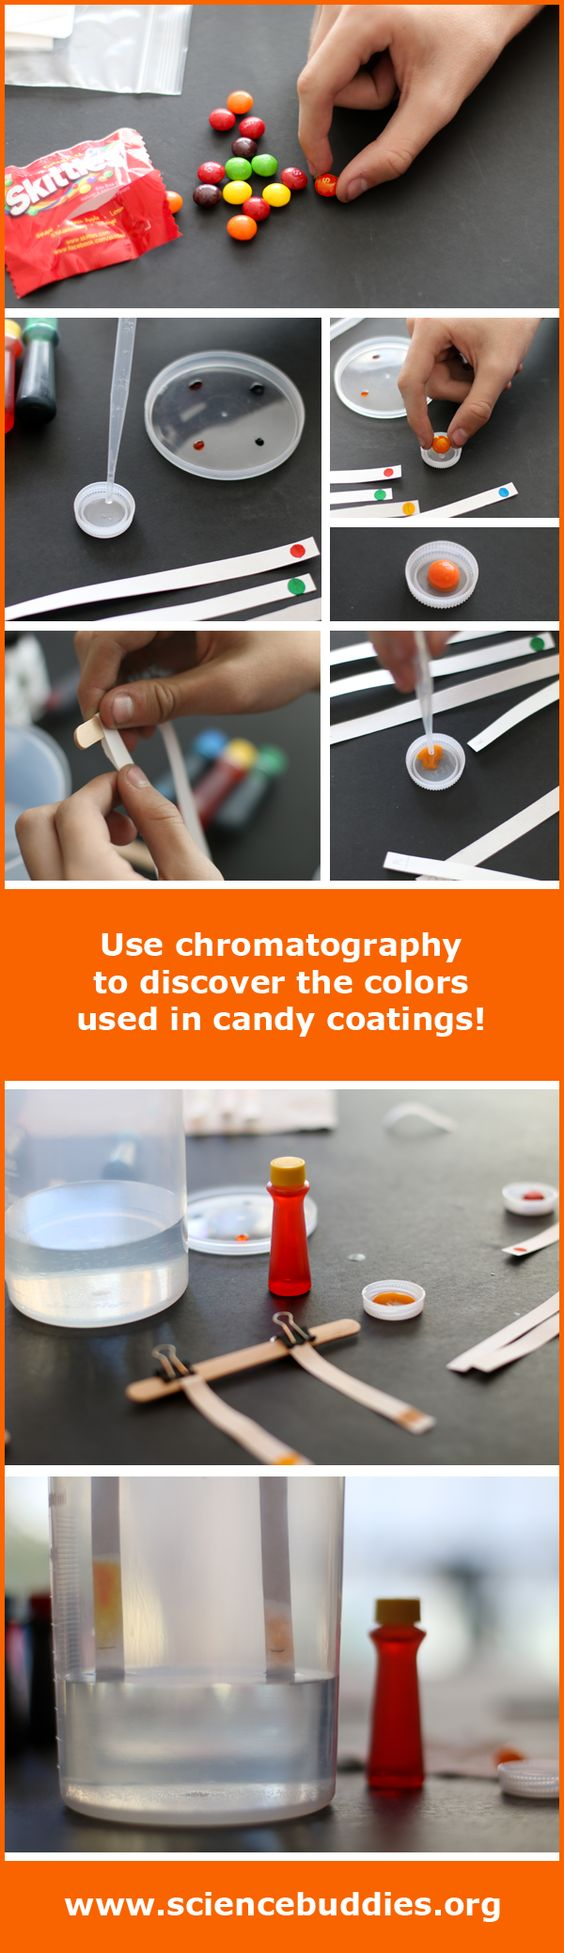 Candy Color Chromatography experiment and photos of hands-on science STEM project with kids at home / family science